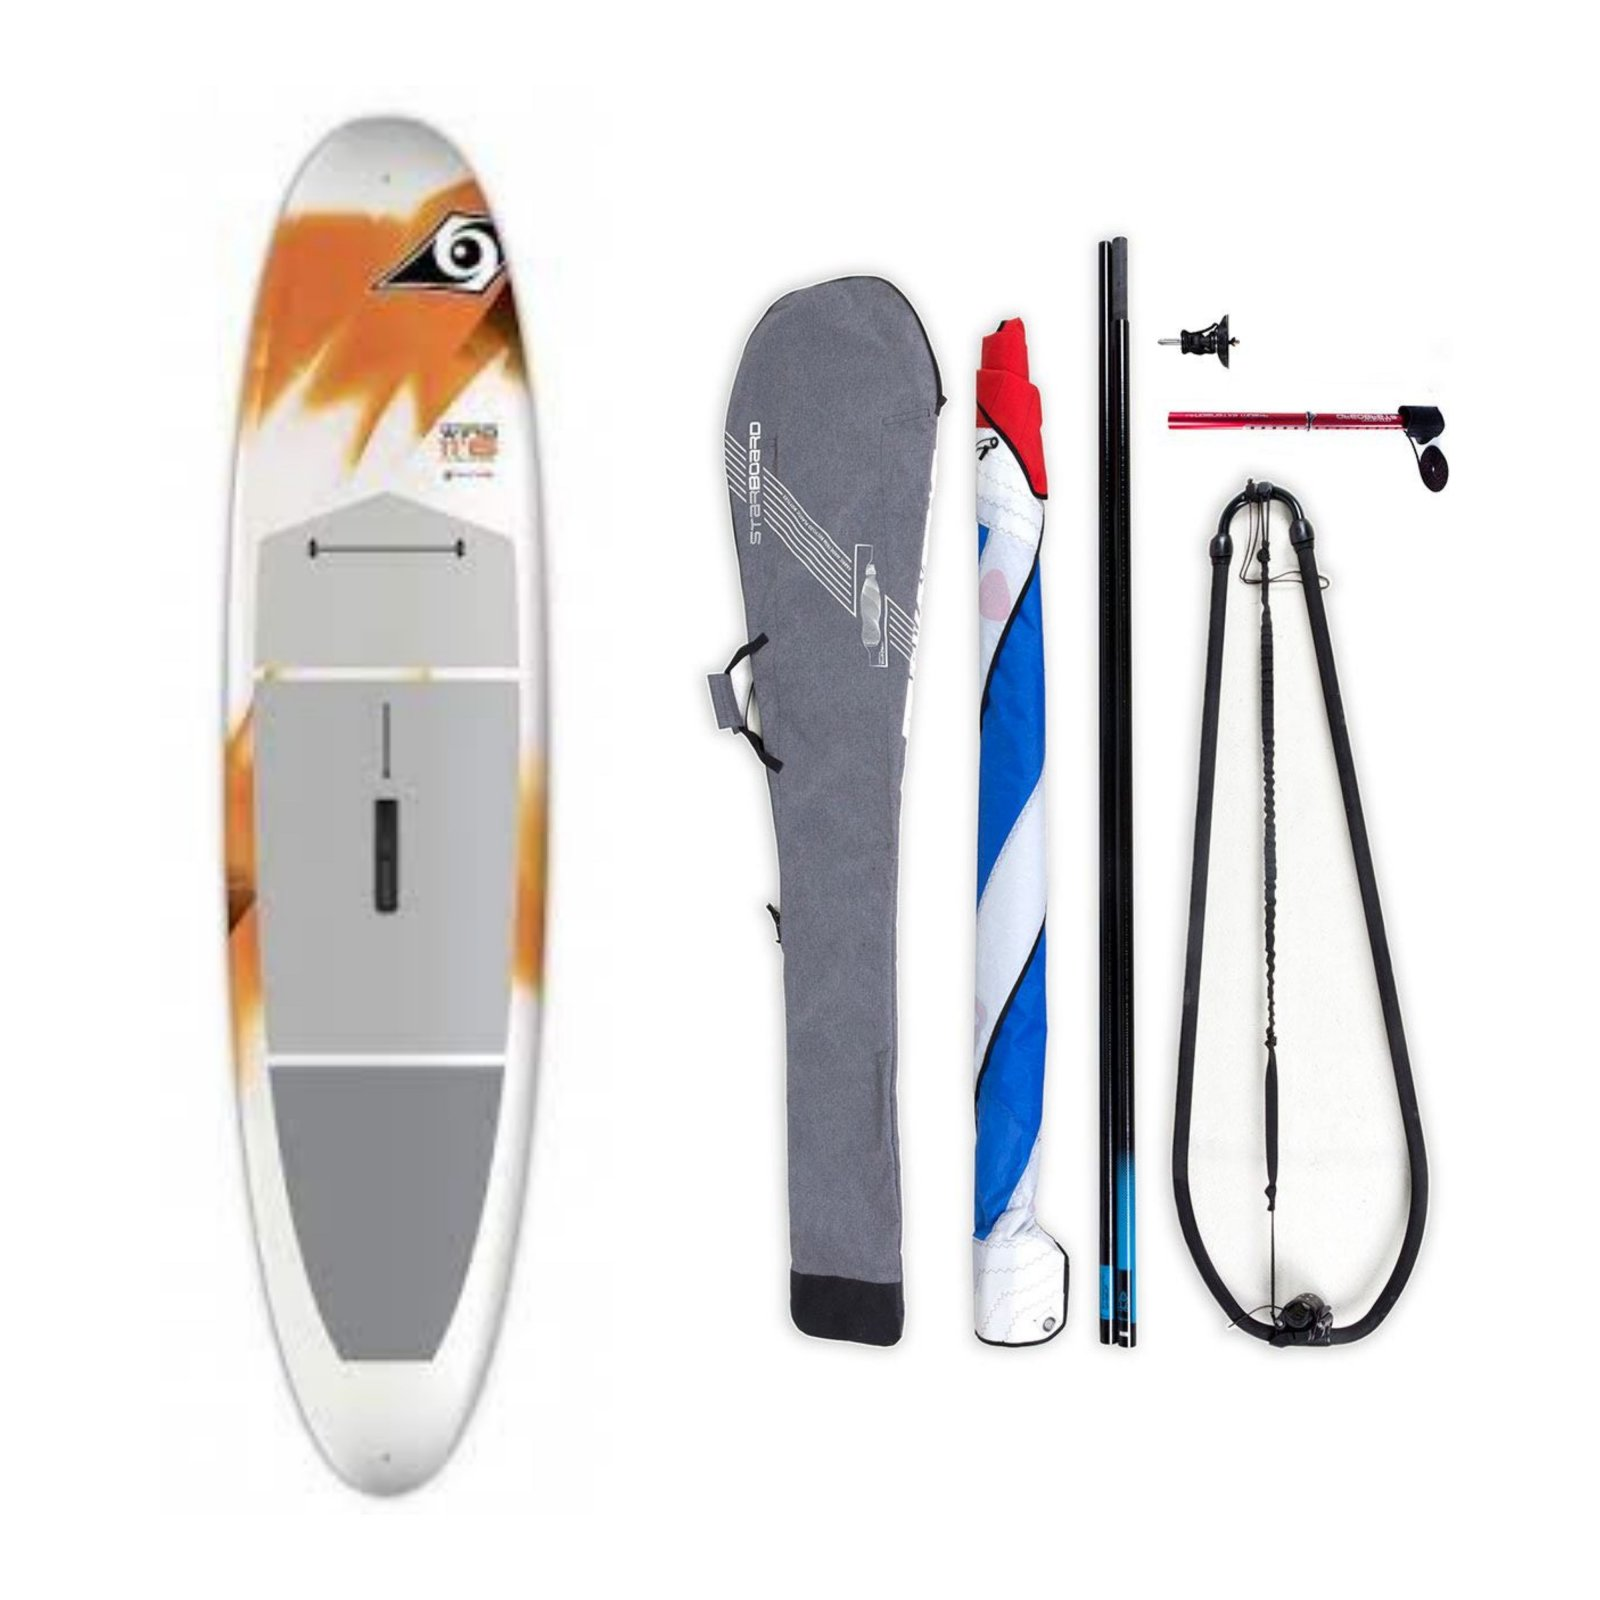 Bic 11'6 Wind/Starboard Classic Rig Package